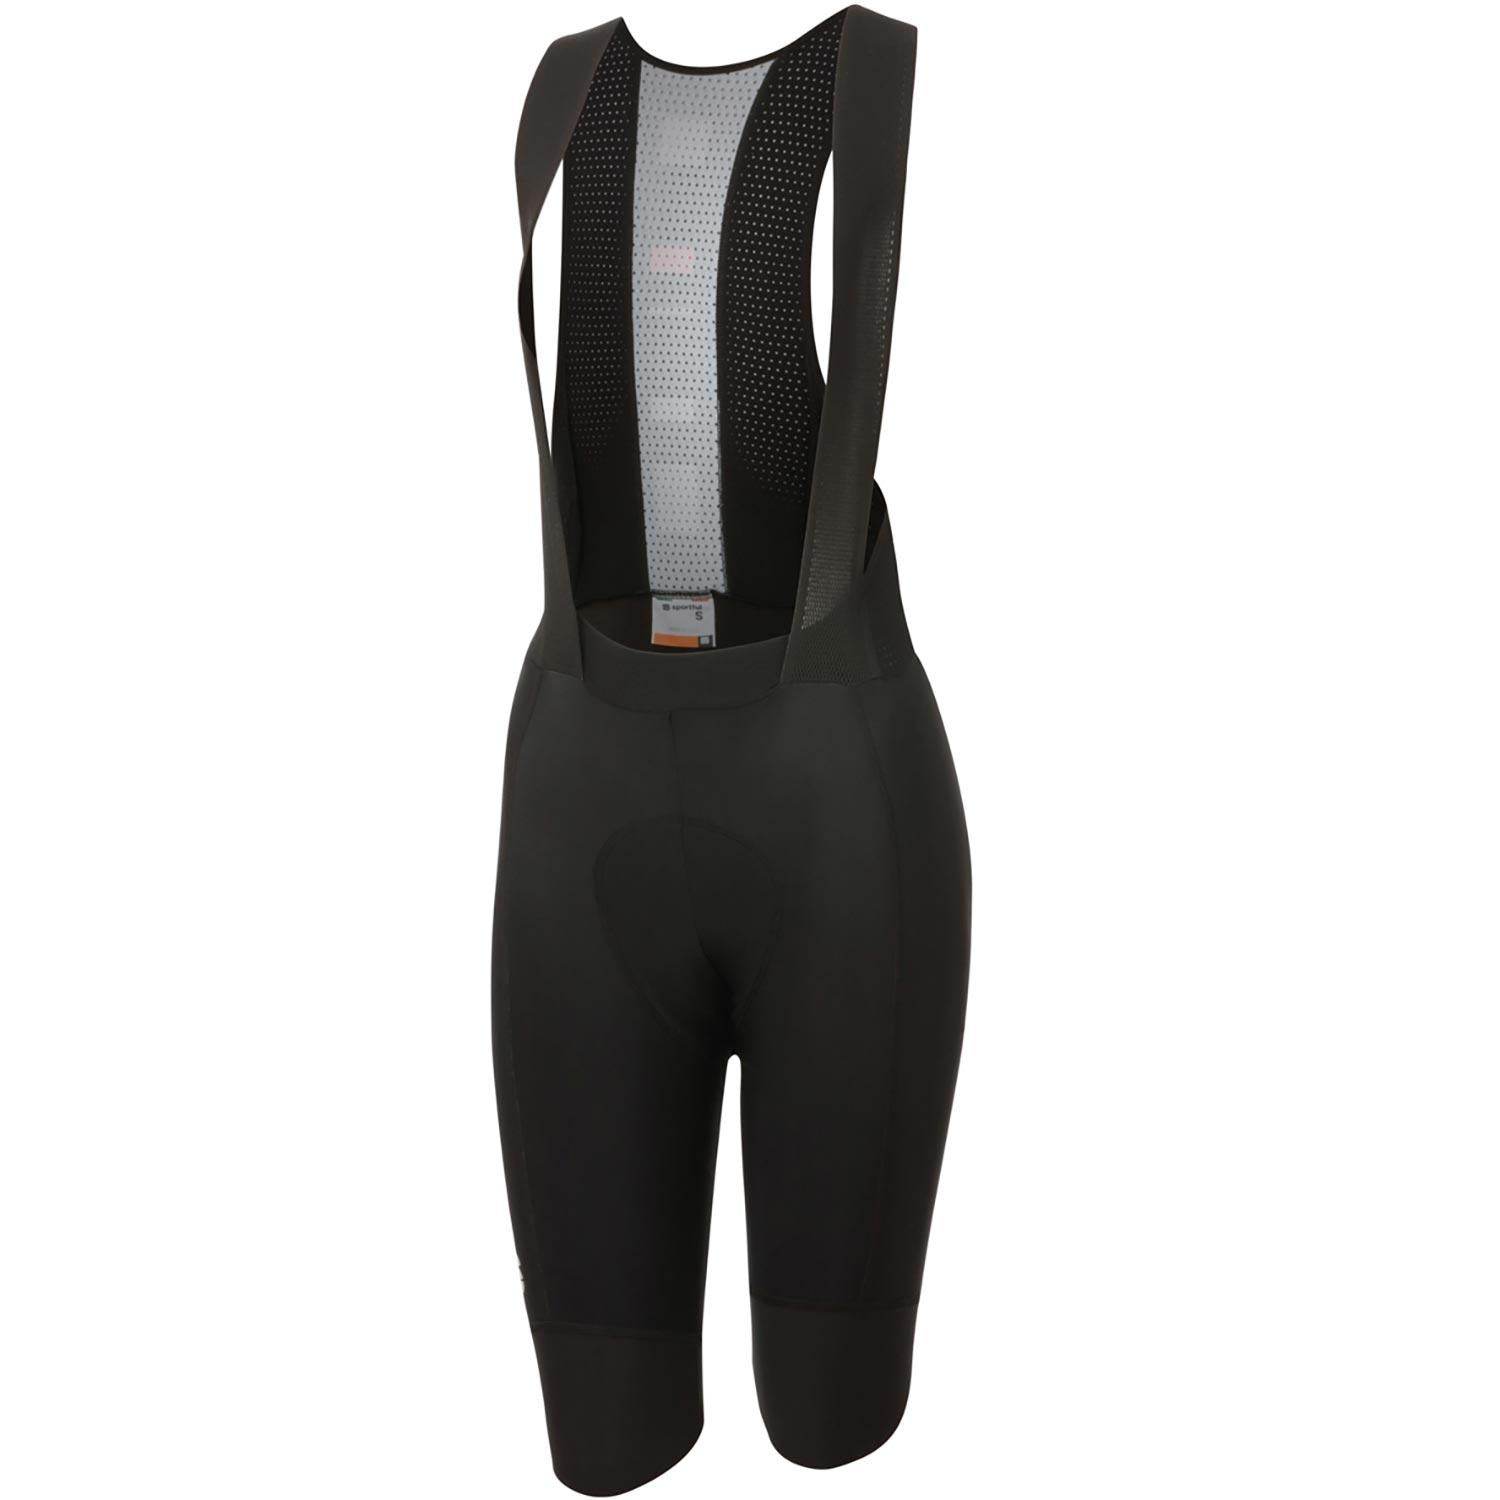 Sportful-Sportful BodyFit Pro Women's Thermal Bib Shorts-Black-XS-SF205240021-saddleback-elite-performance-cycling